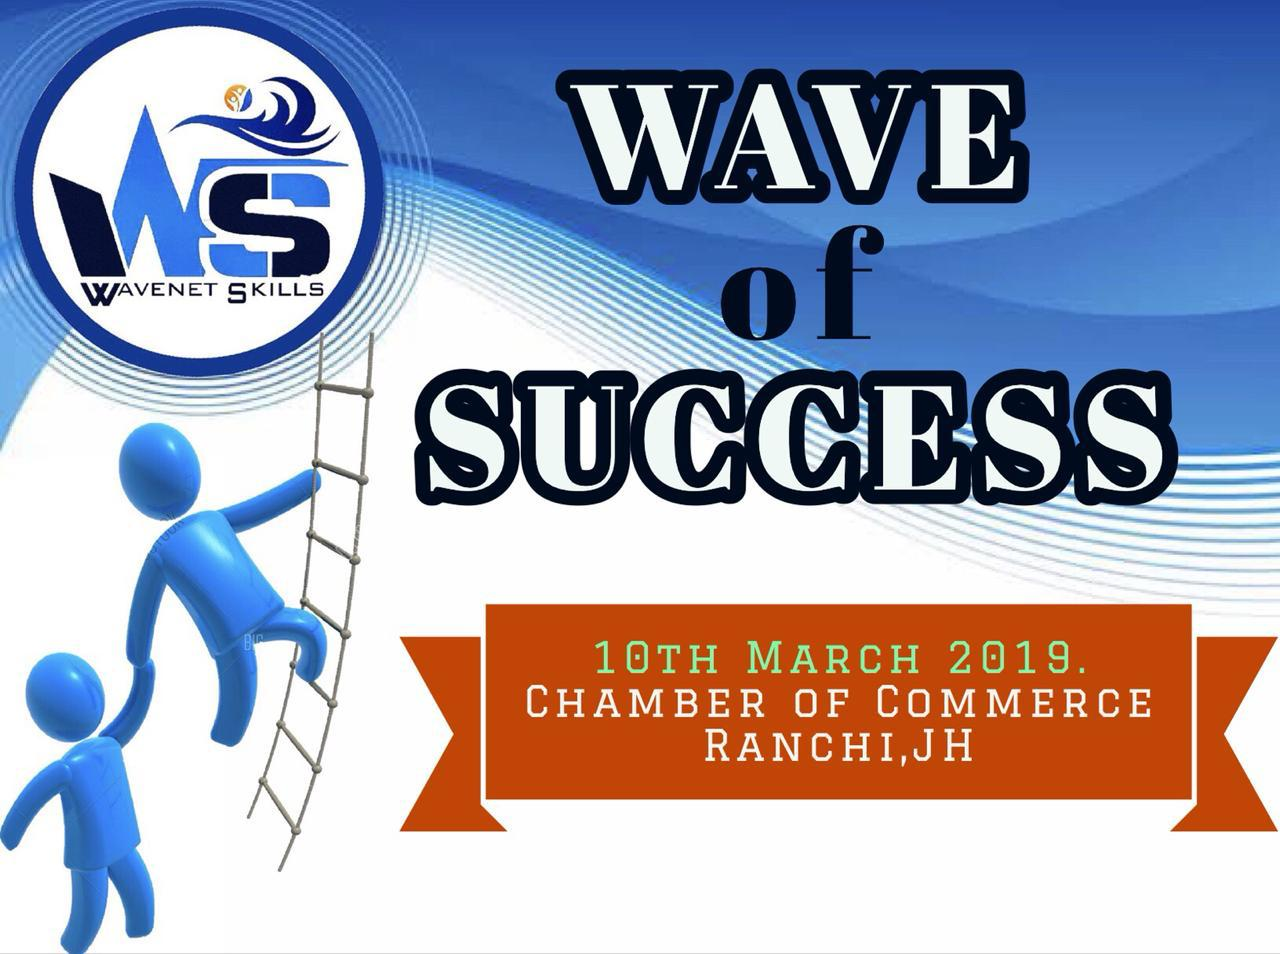 WAVE OF SUCCESS